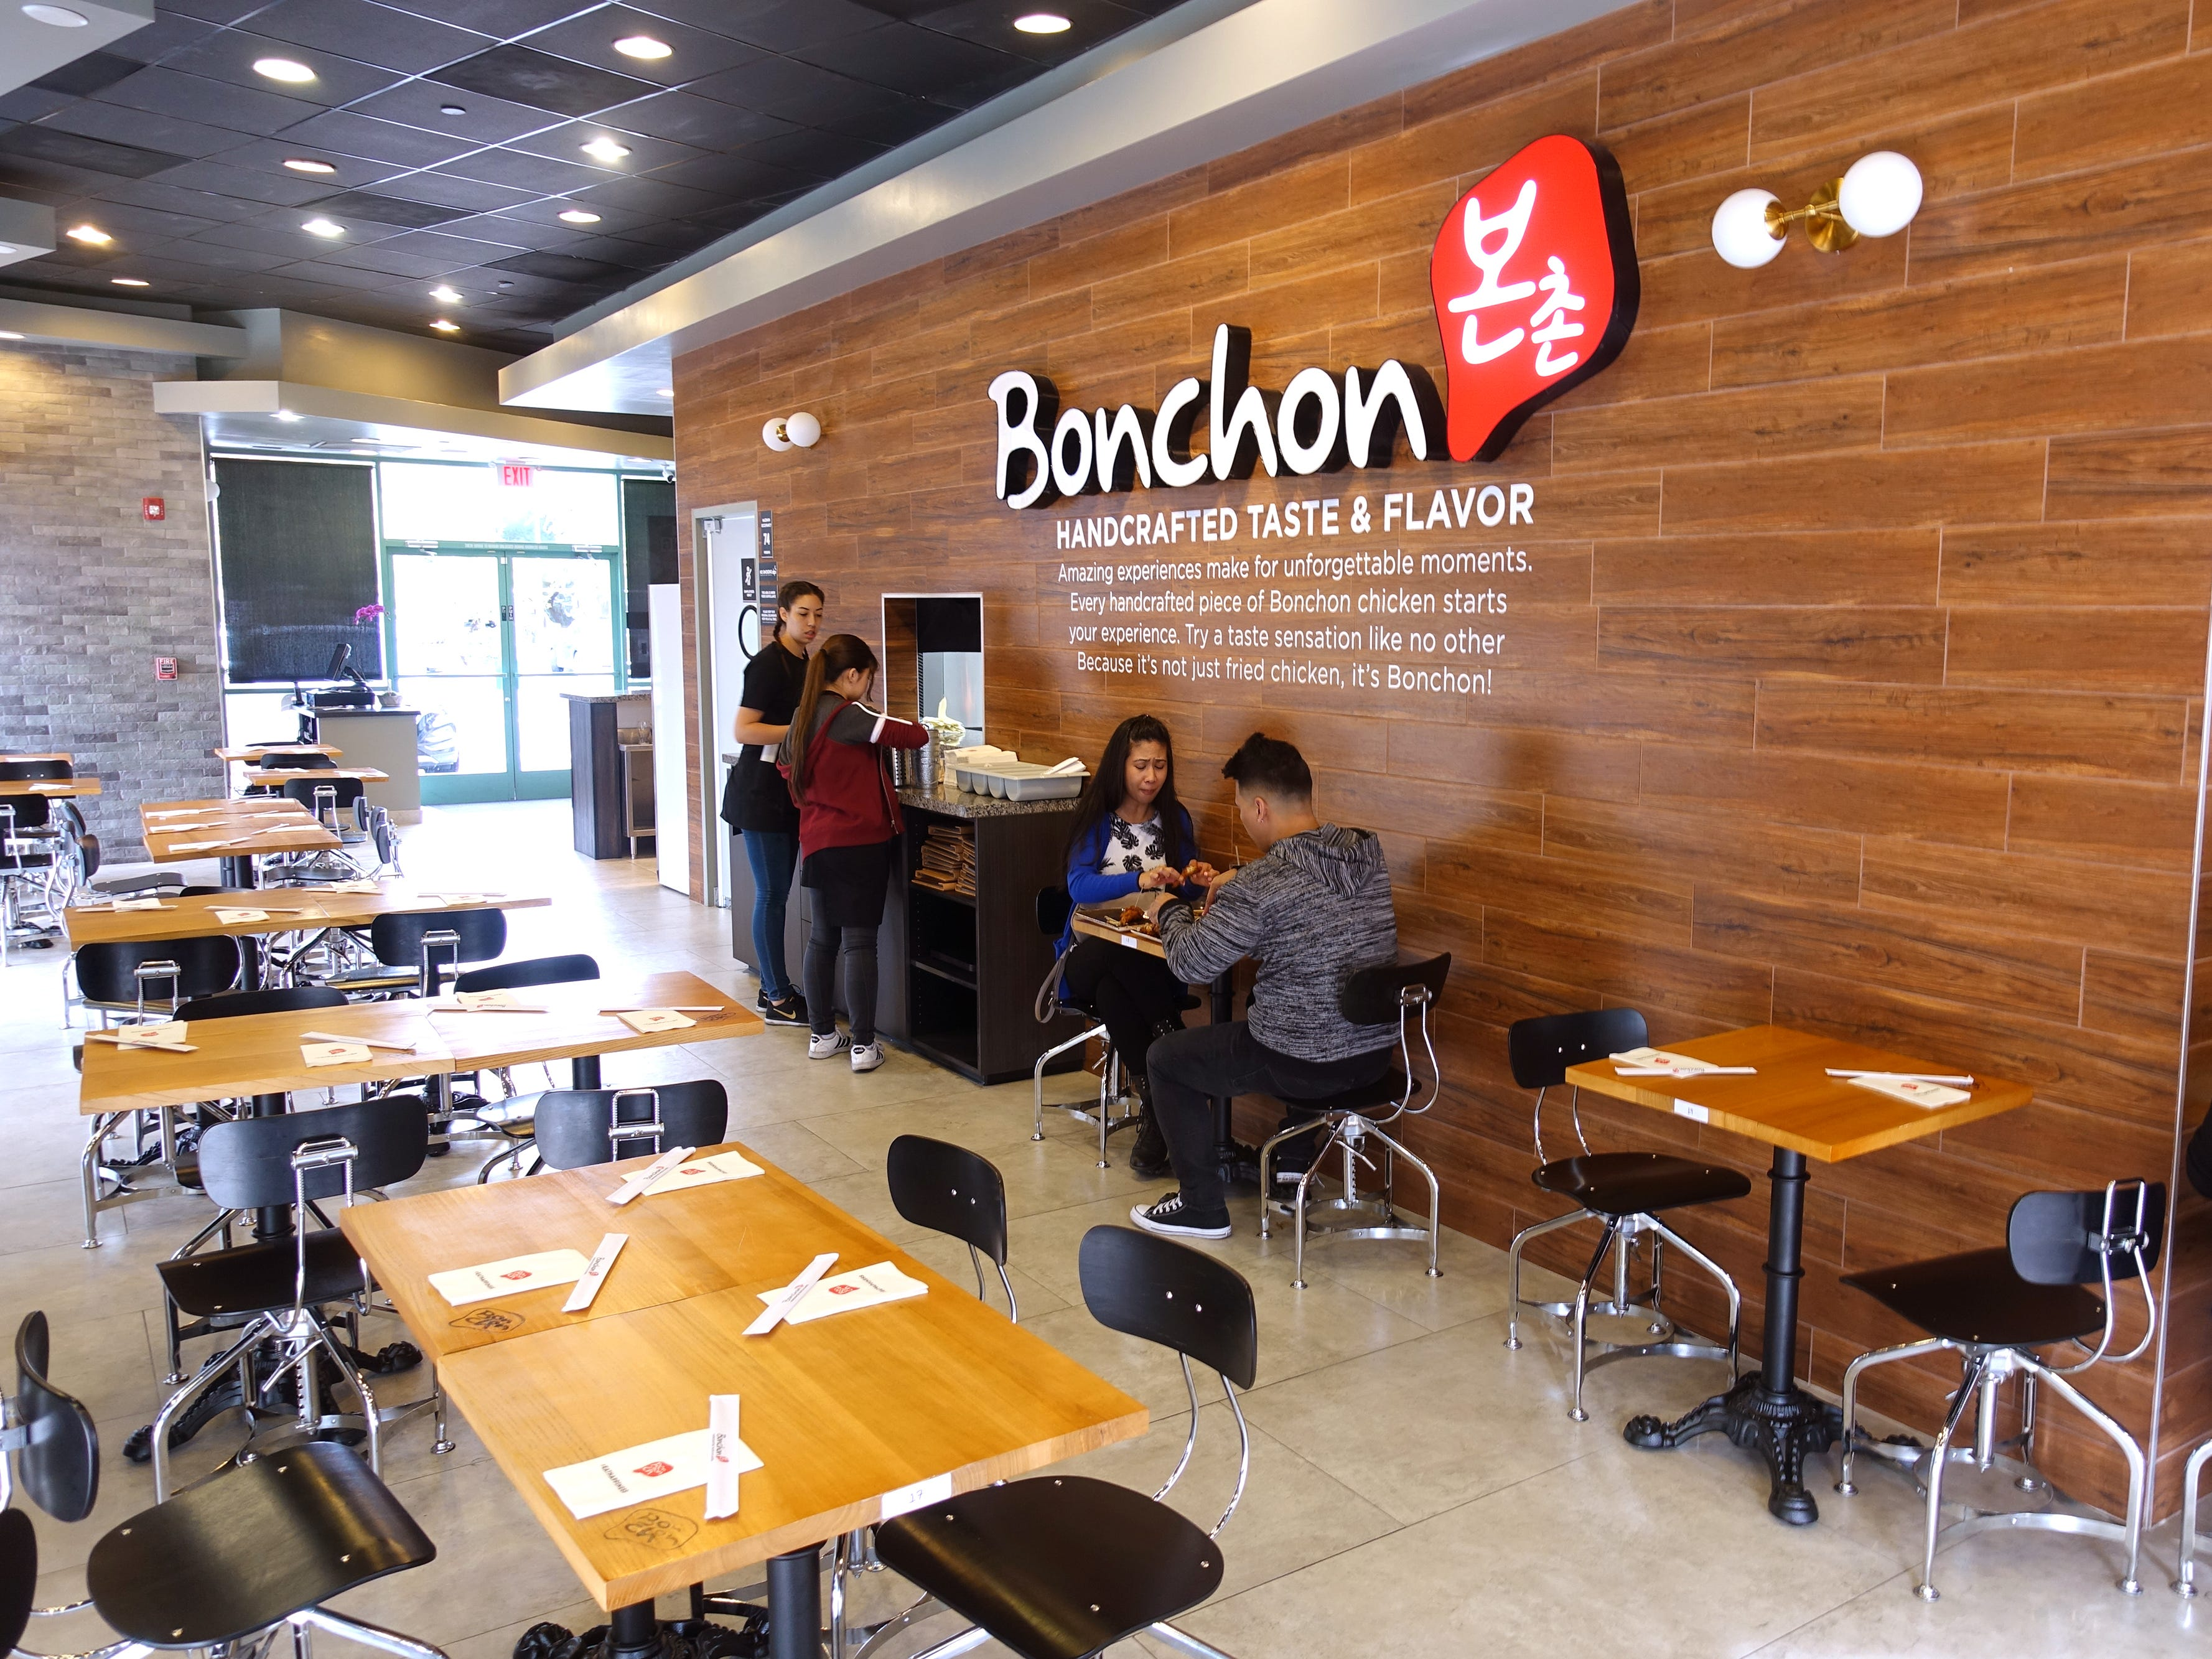 The interior of Bonchon in Tempe.